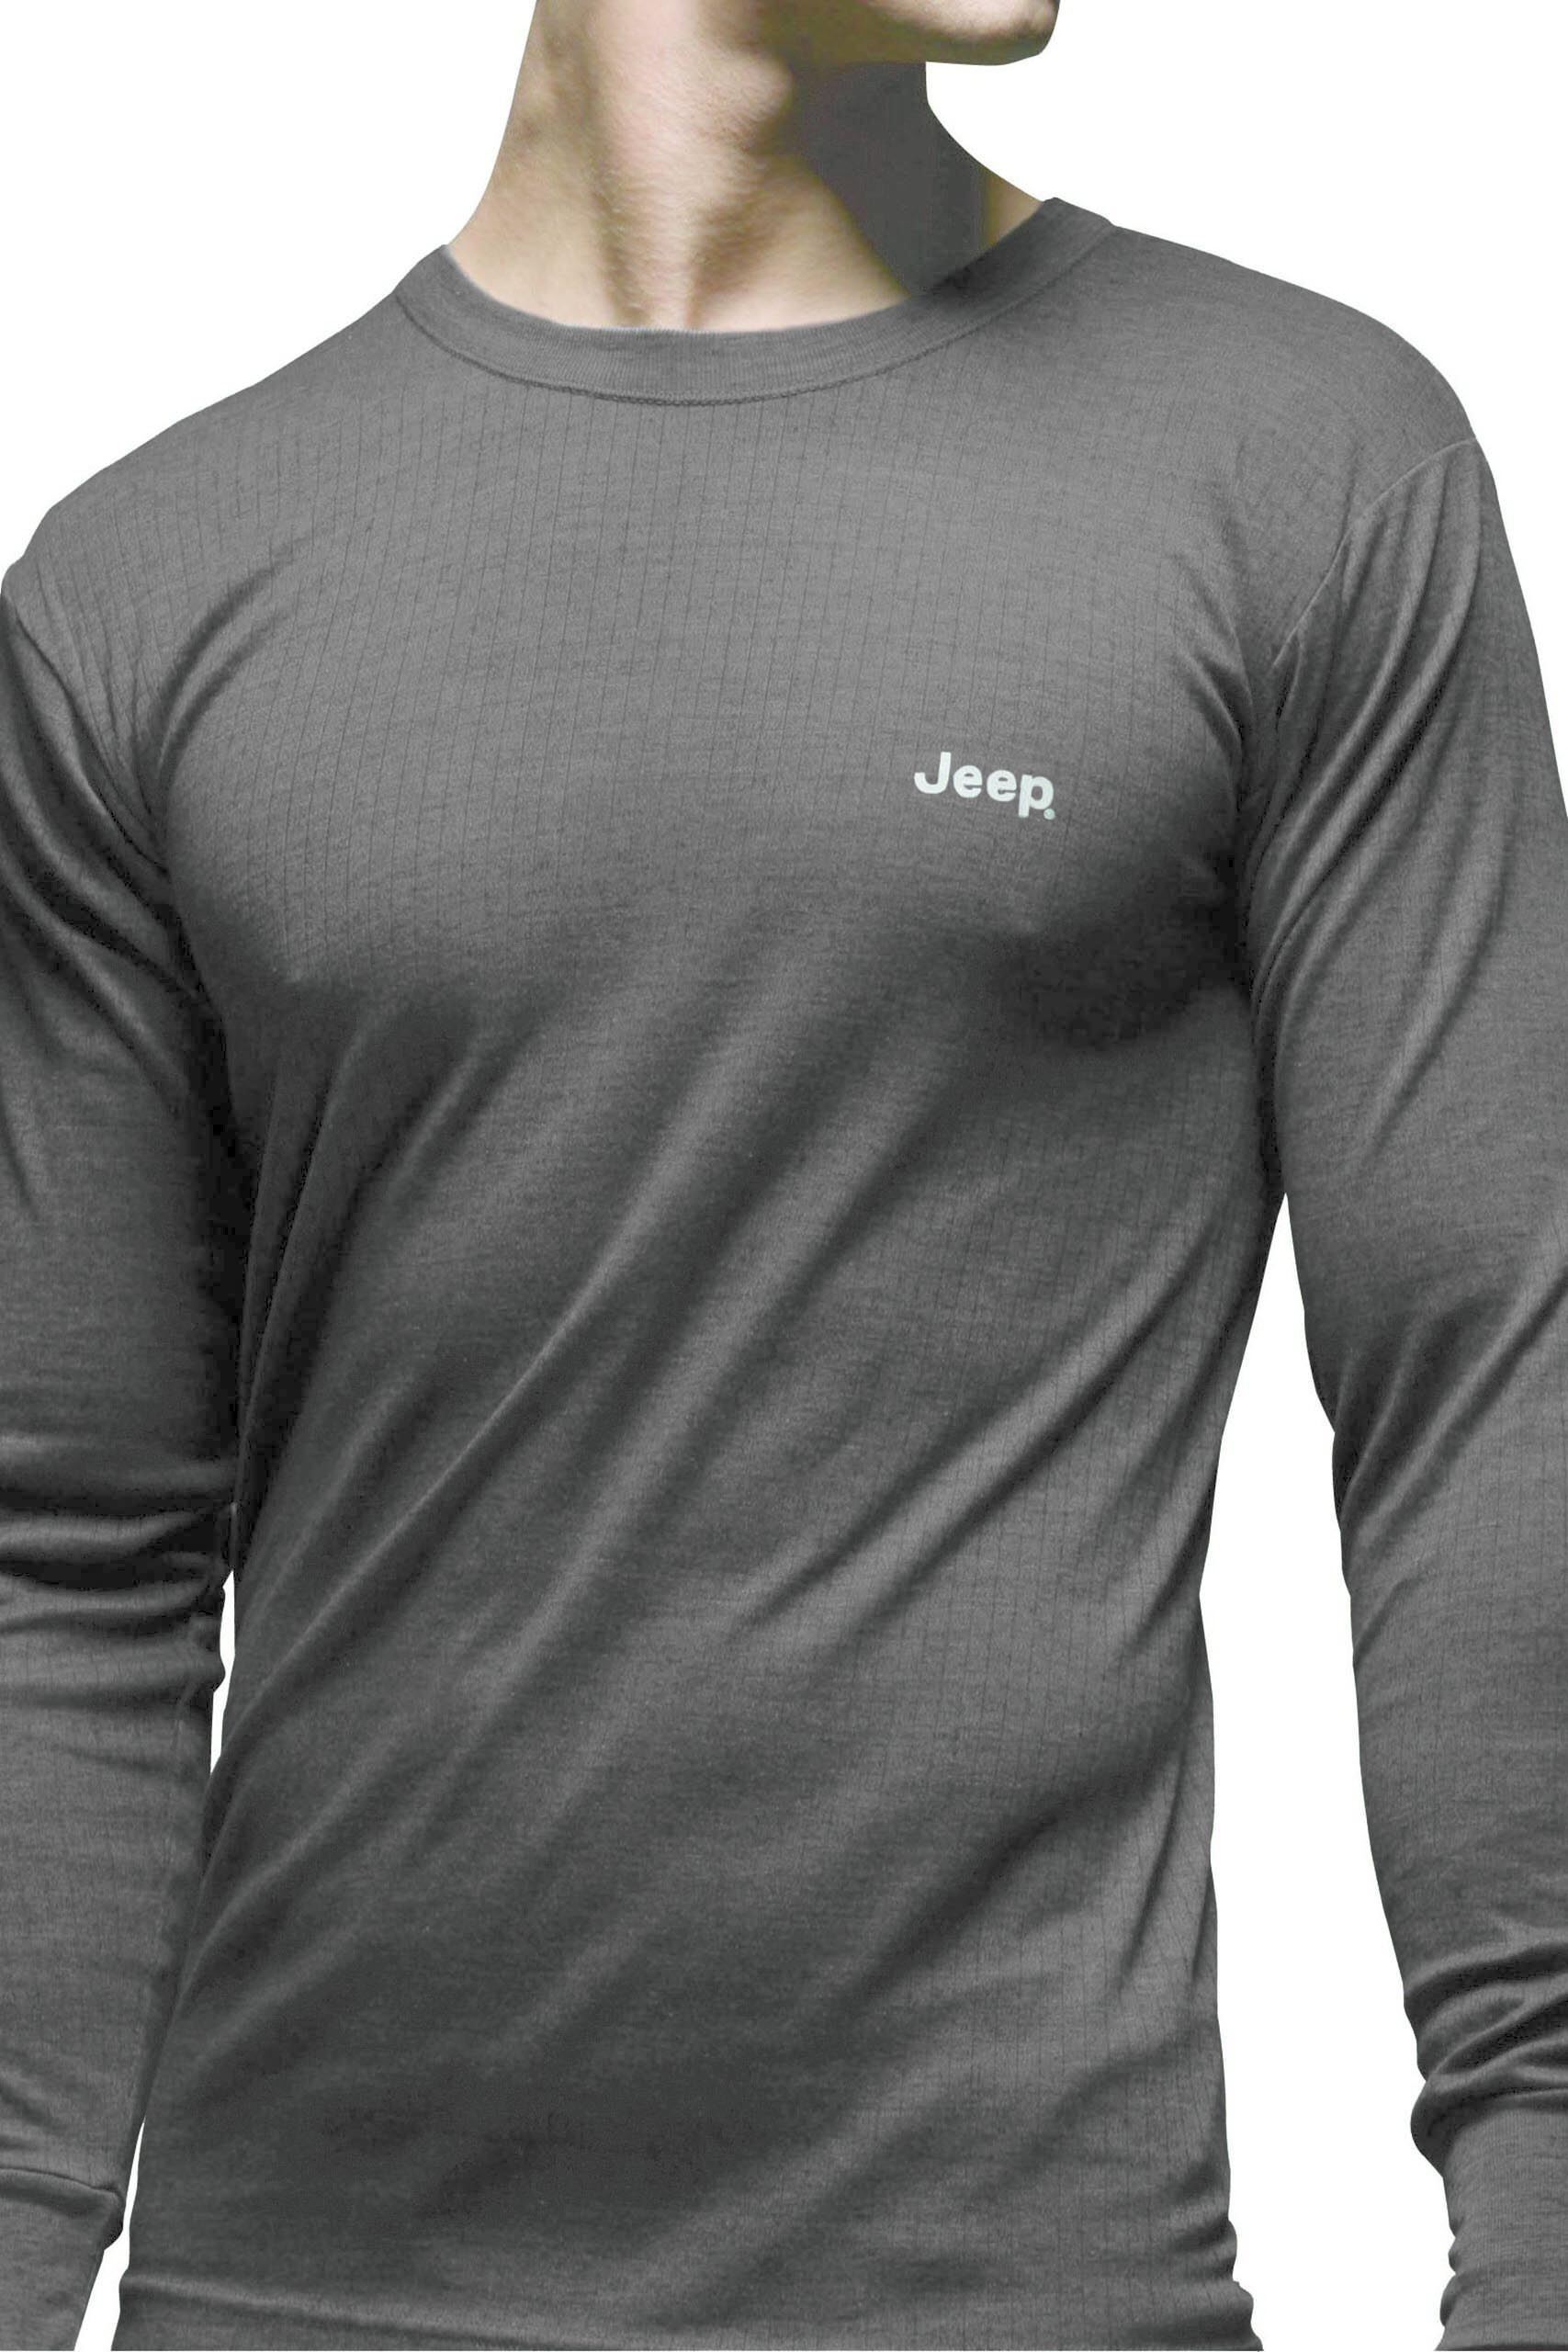 Image of 1 Pack Grey Long Sleeved Thermal T-Shirt Men's Medium - Jeep